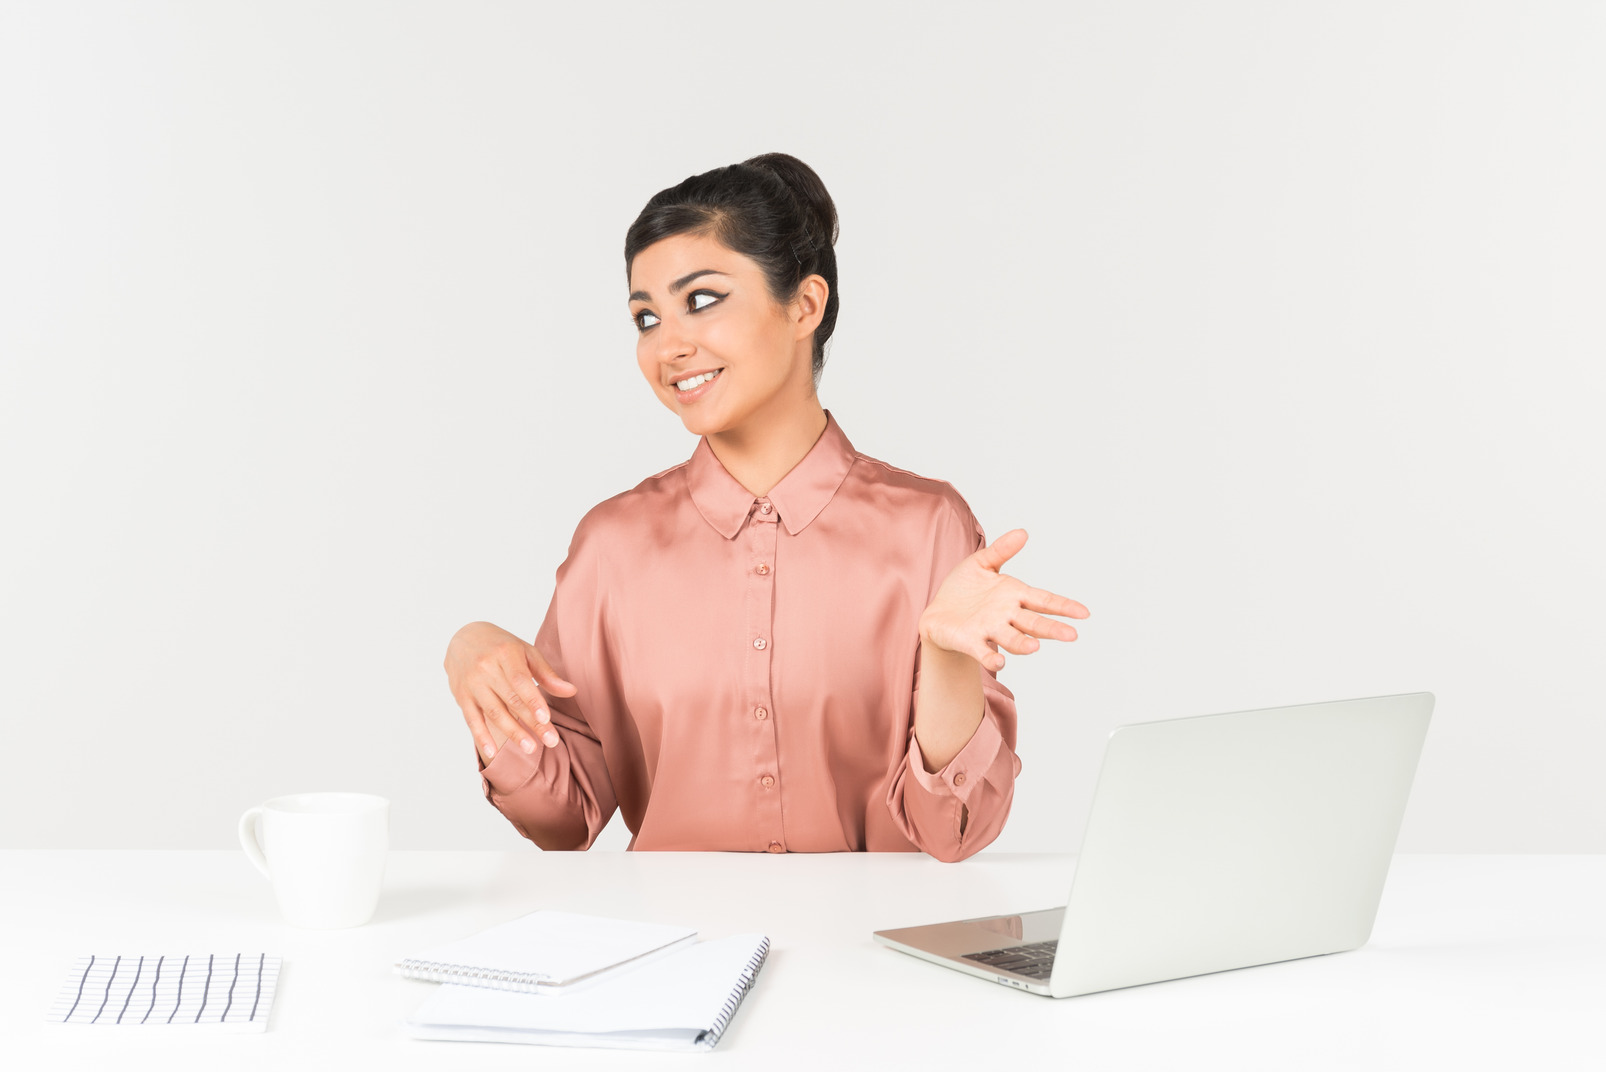 Young indian woman sitting at the office desk and pointing with both hands